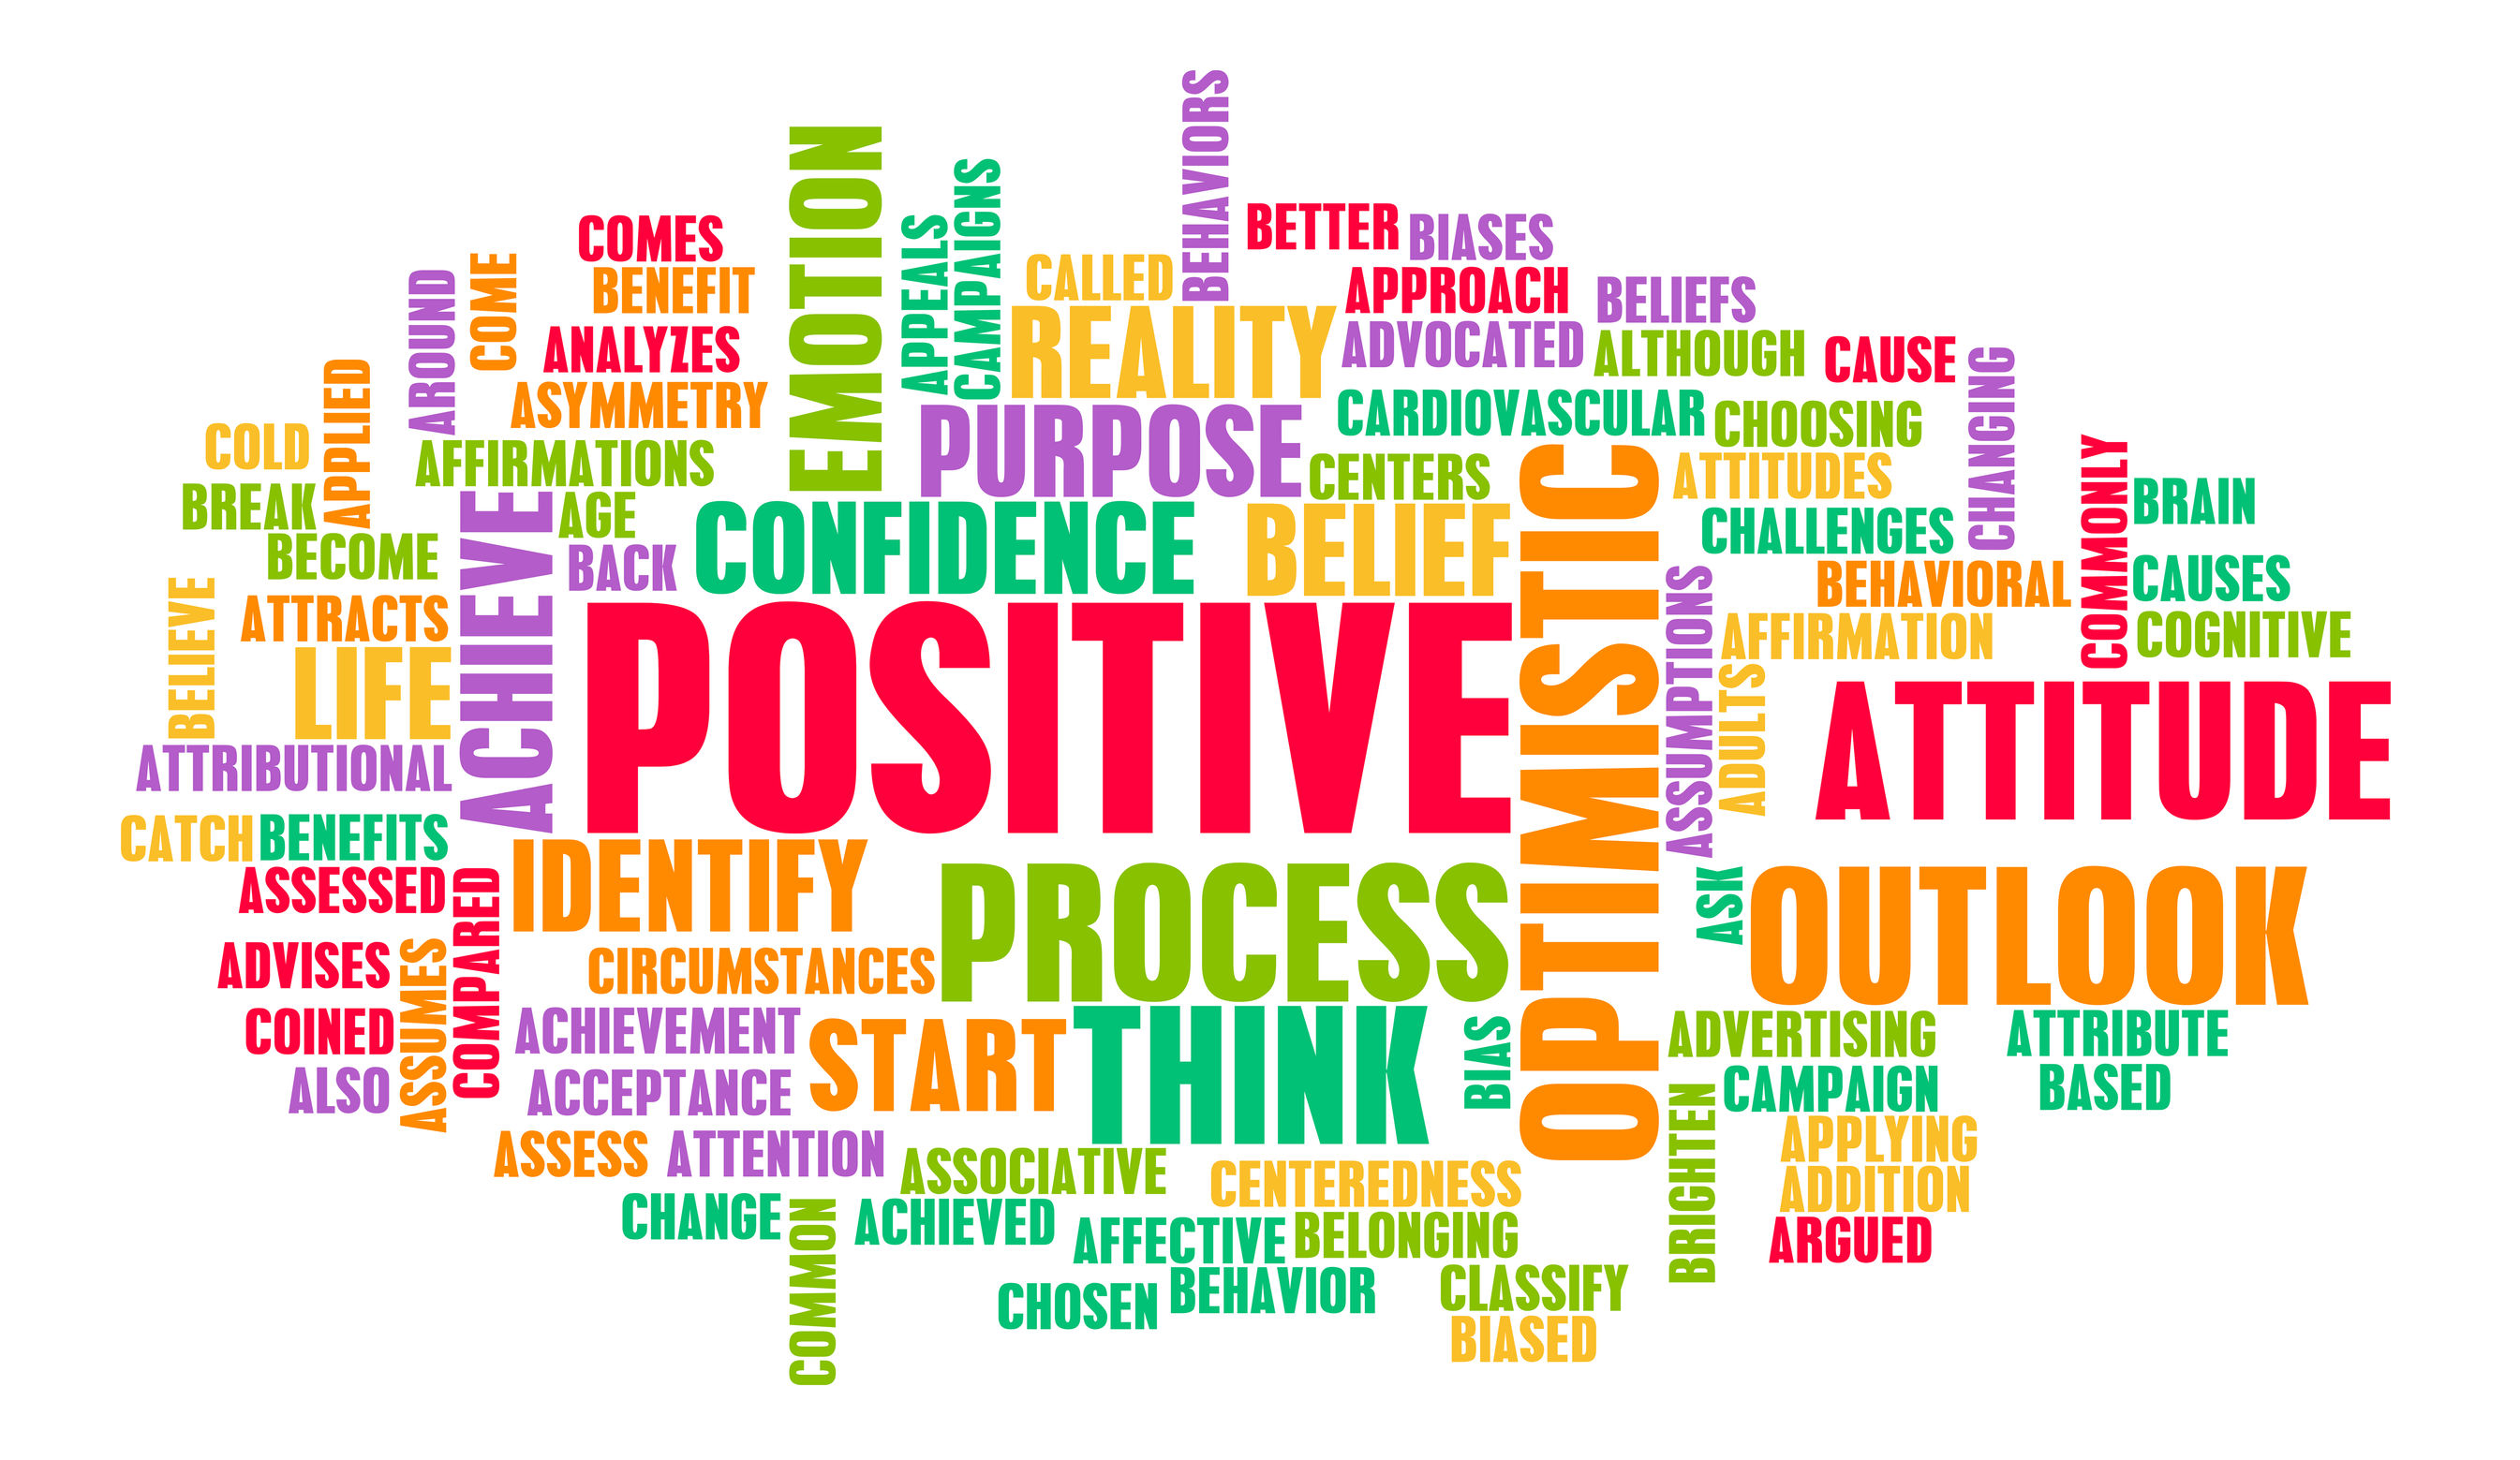 44563759 - think or stay positive as a positivity mindset